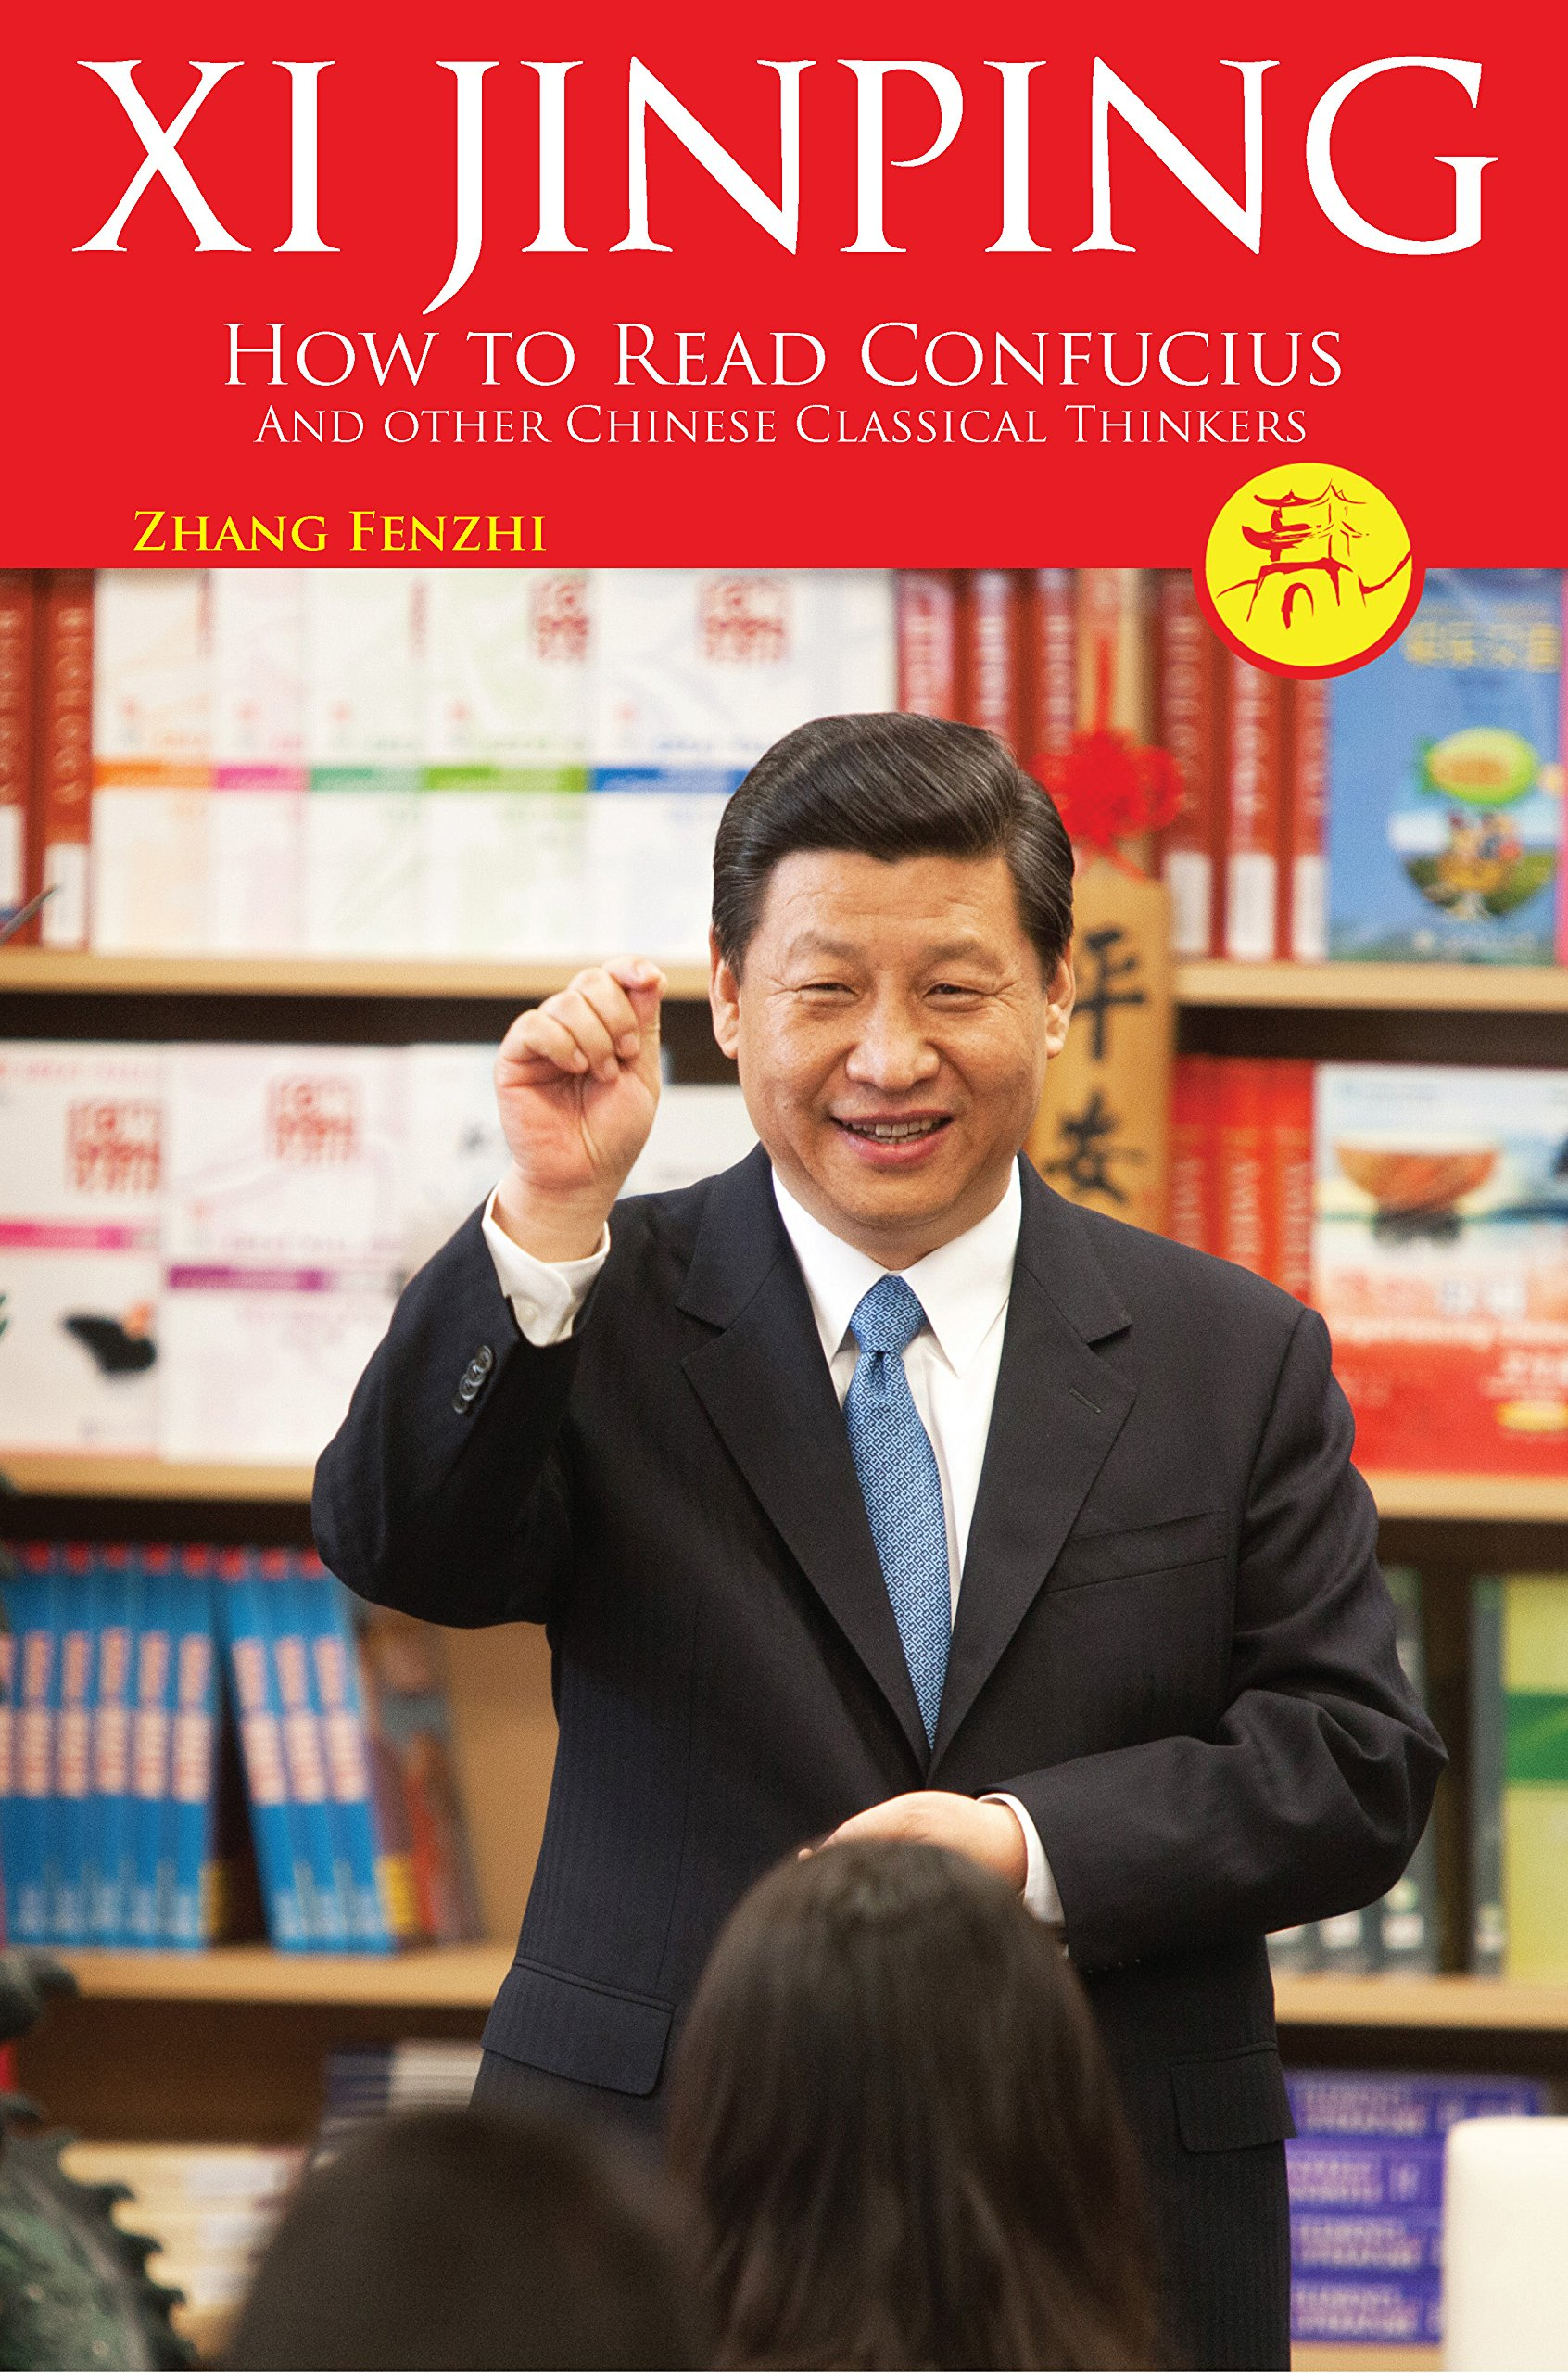 Xi Jinping: How to Read Confucius and other Chinese Classical Thinkers:  Fenzhi Zhang: 9781627741200: Amazon.com: Books